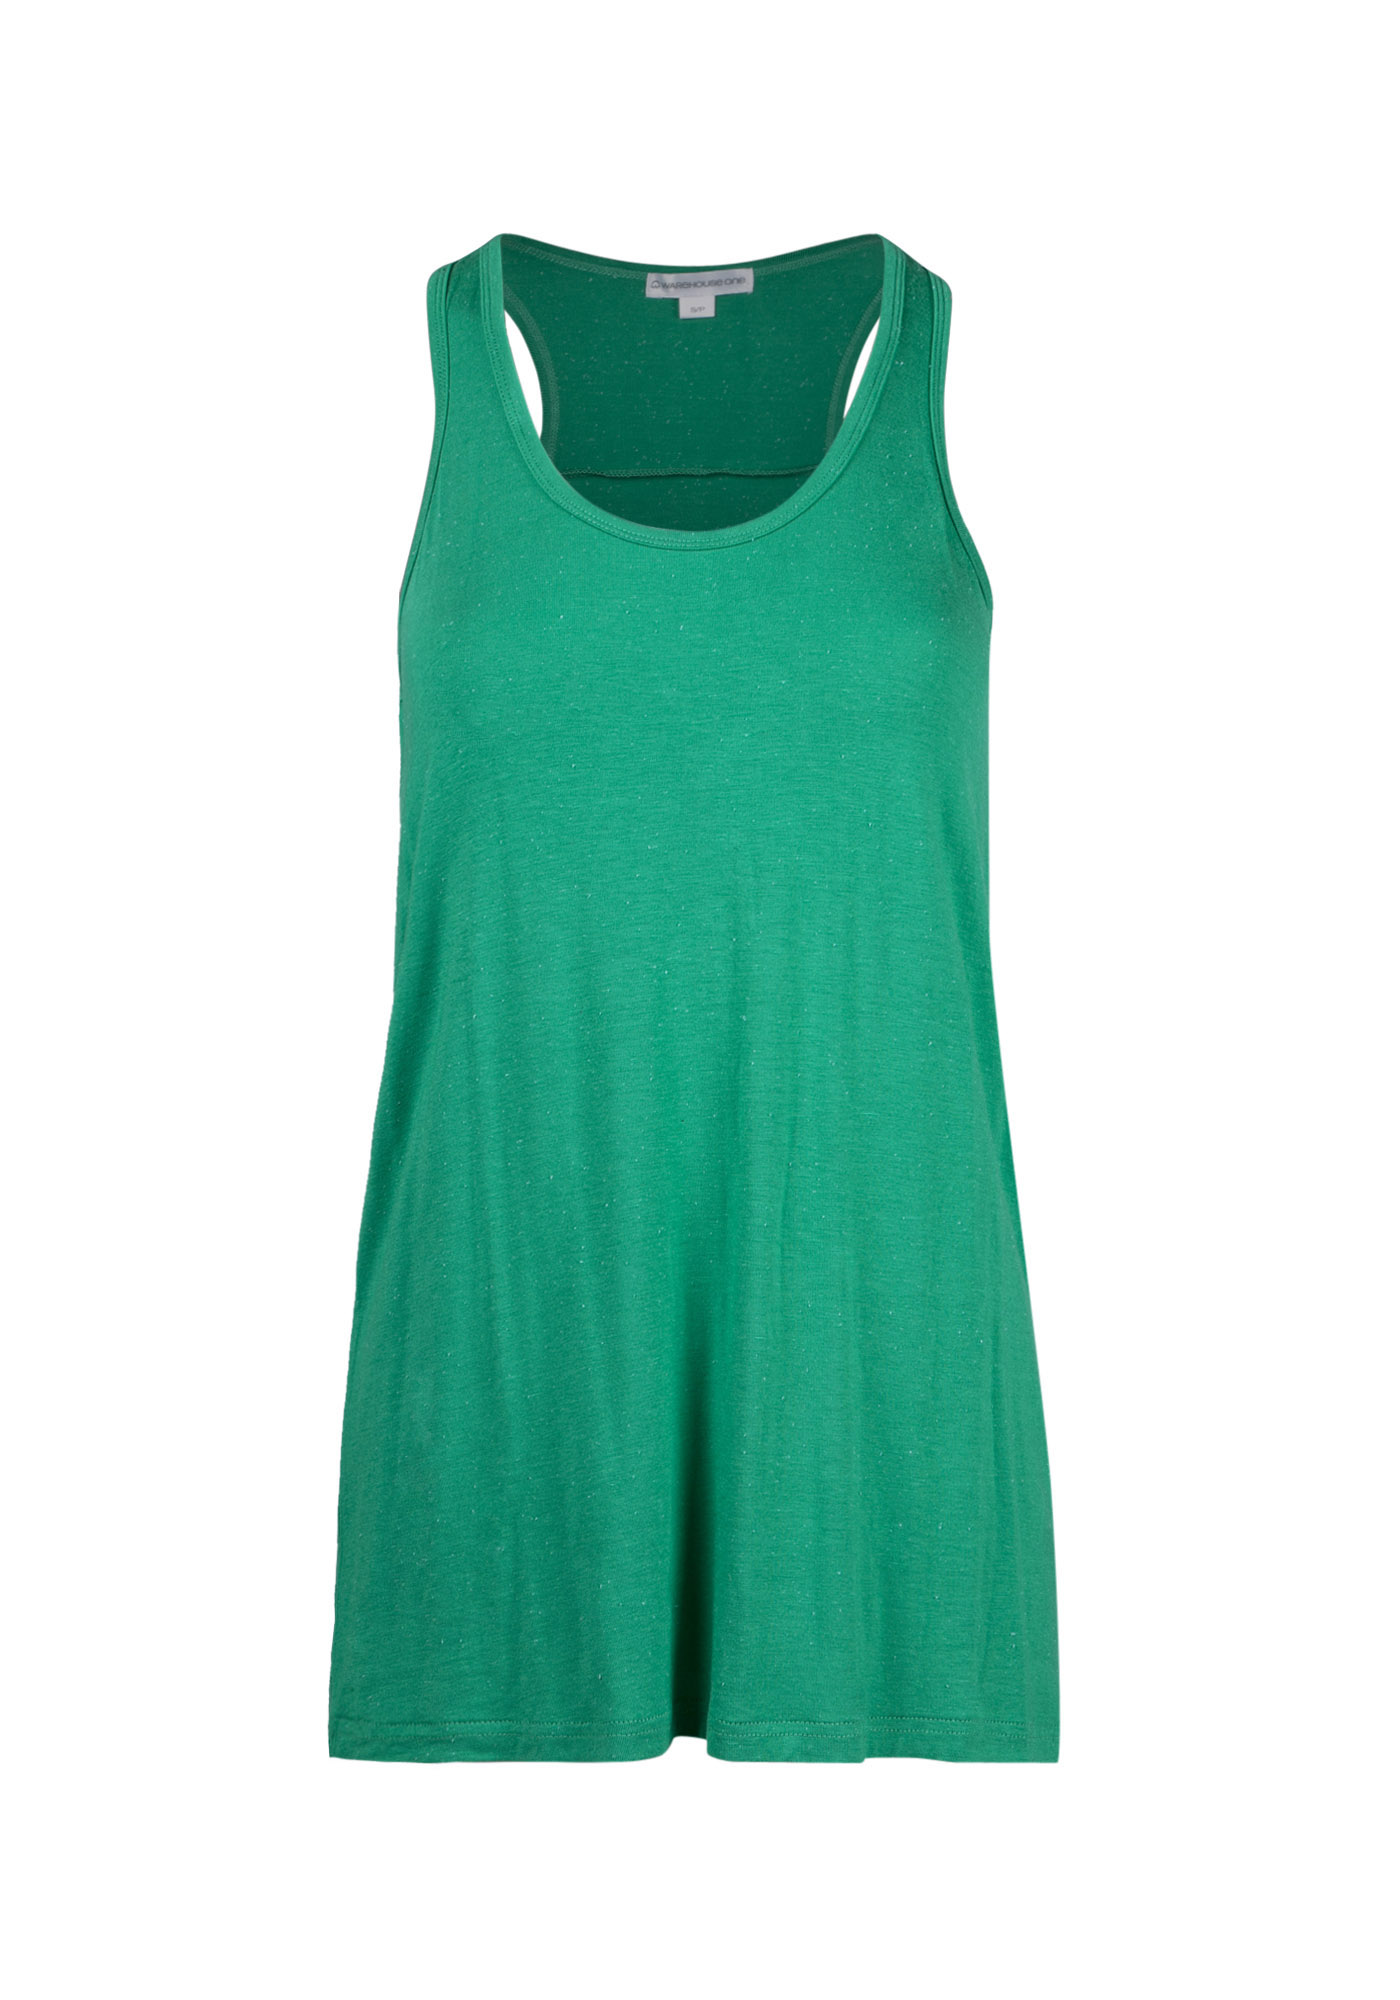 Women's Speckled Racerback Tank, EMERALD, hi-res